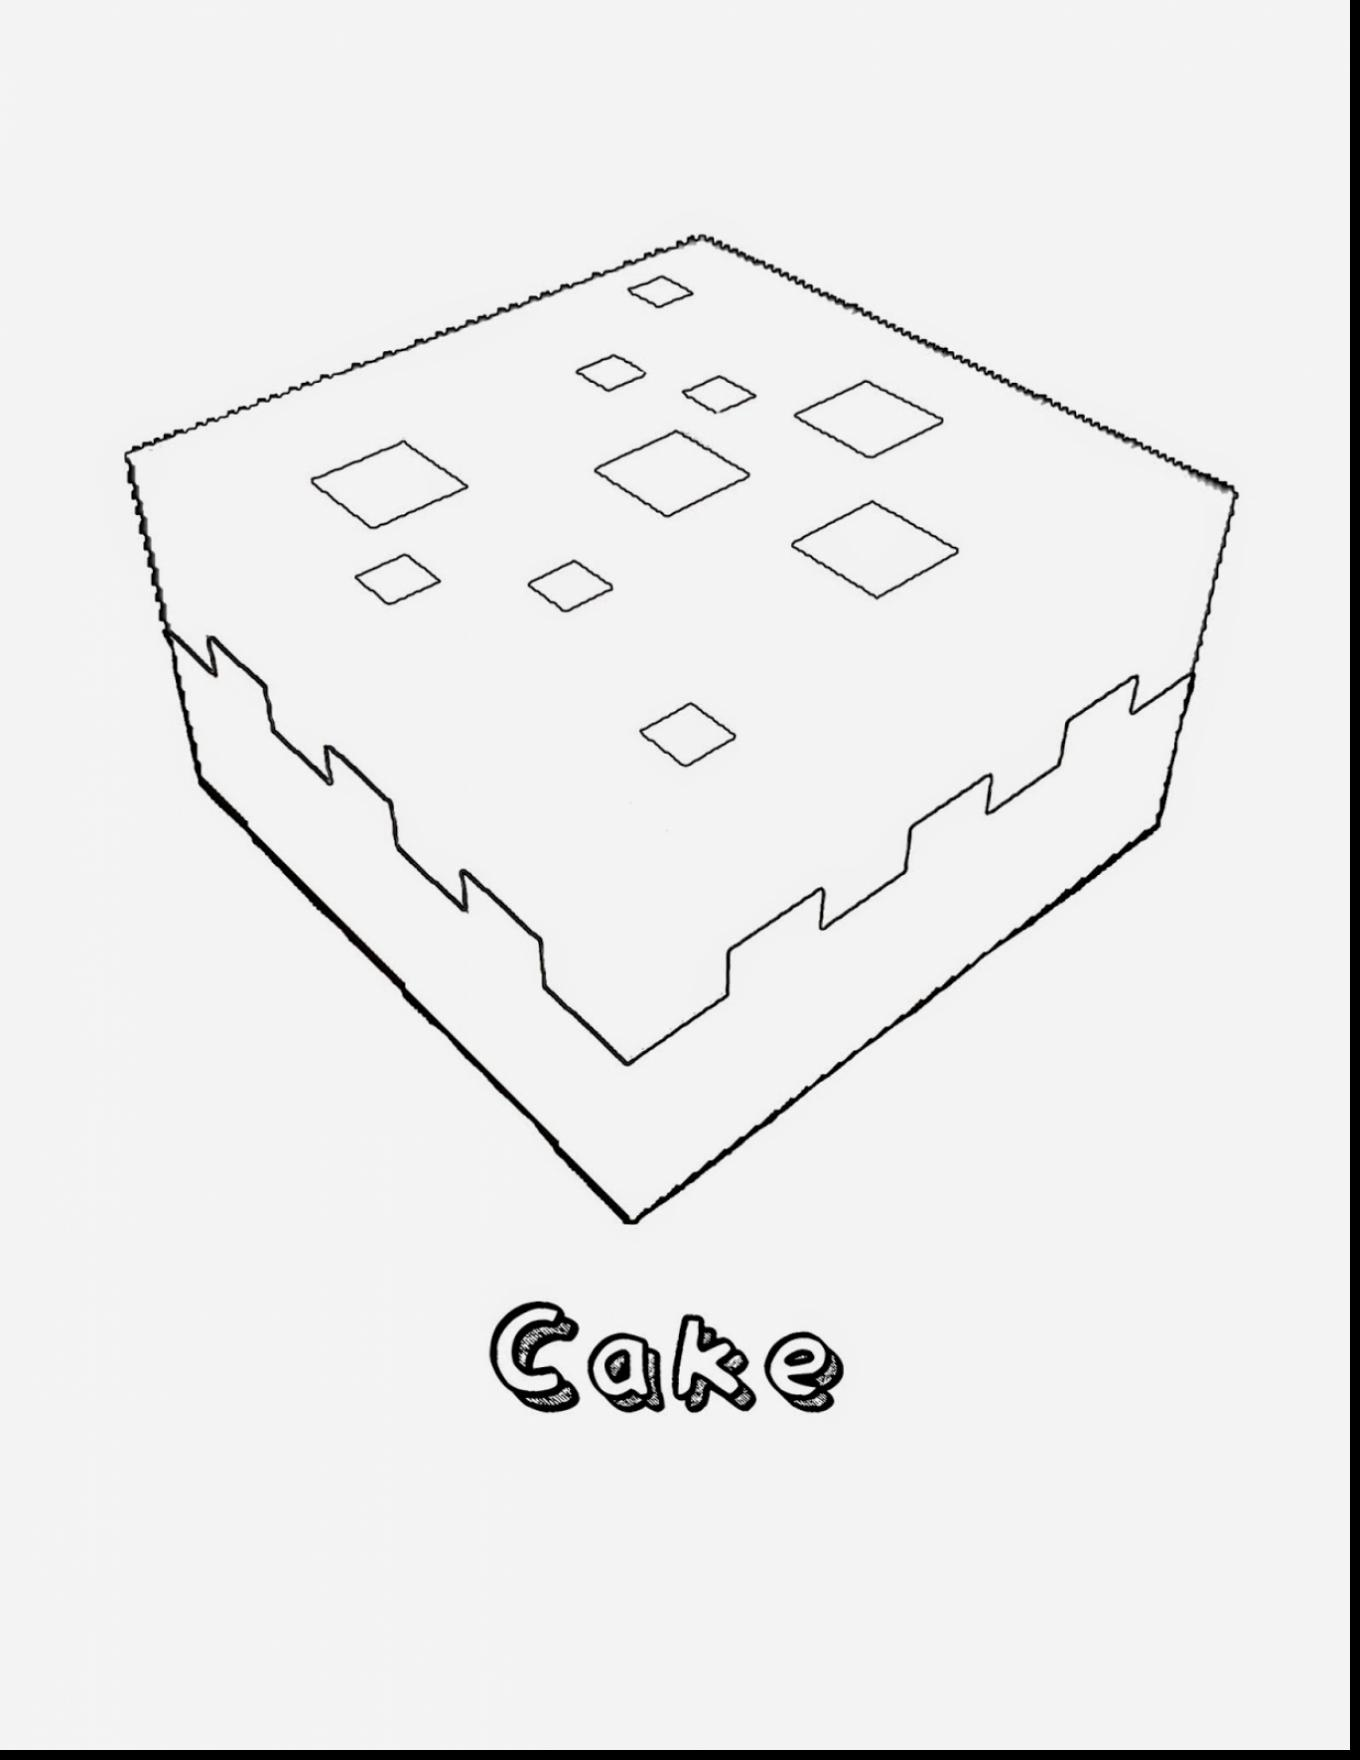 1360x1760 Fantastic Minecraft Cake Coloring Pages With Coloring Pages